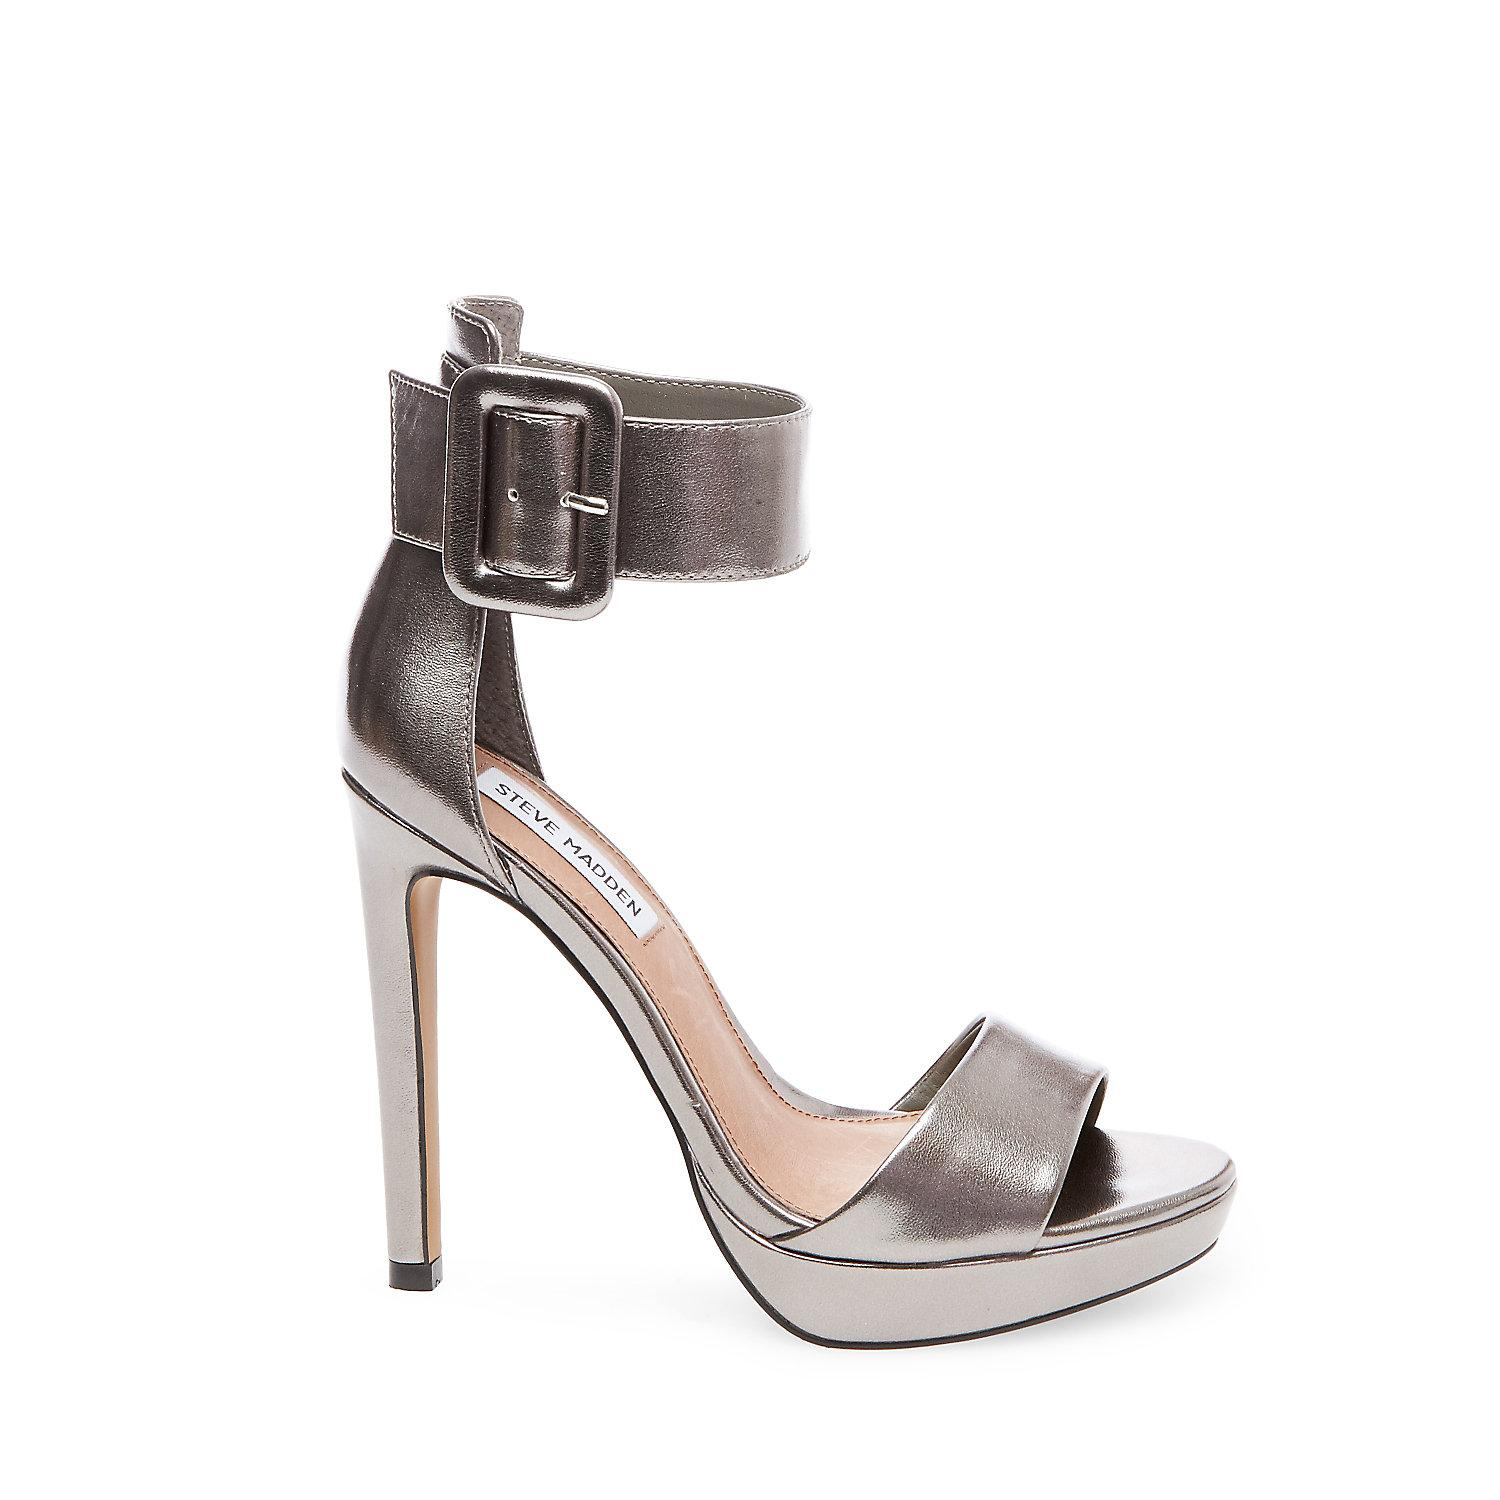 4074f166781 Lyst - Steve Madden Coco